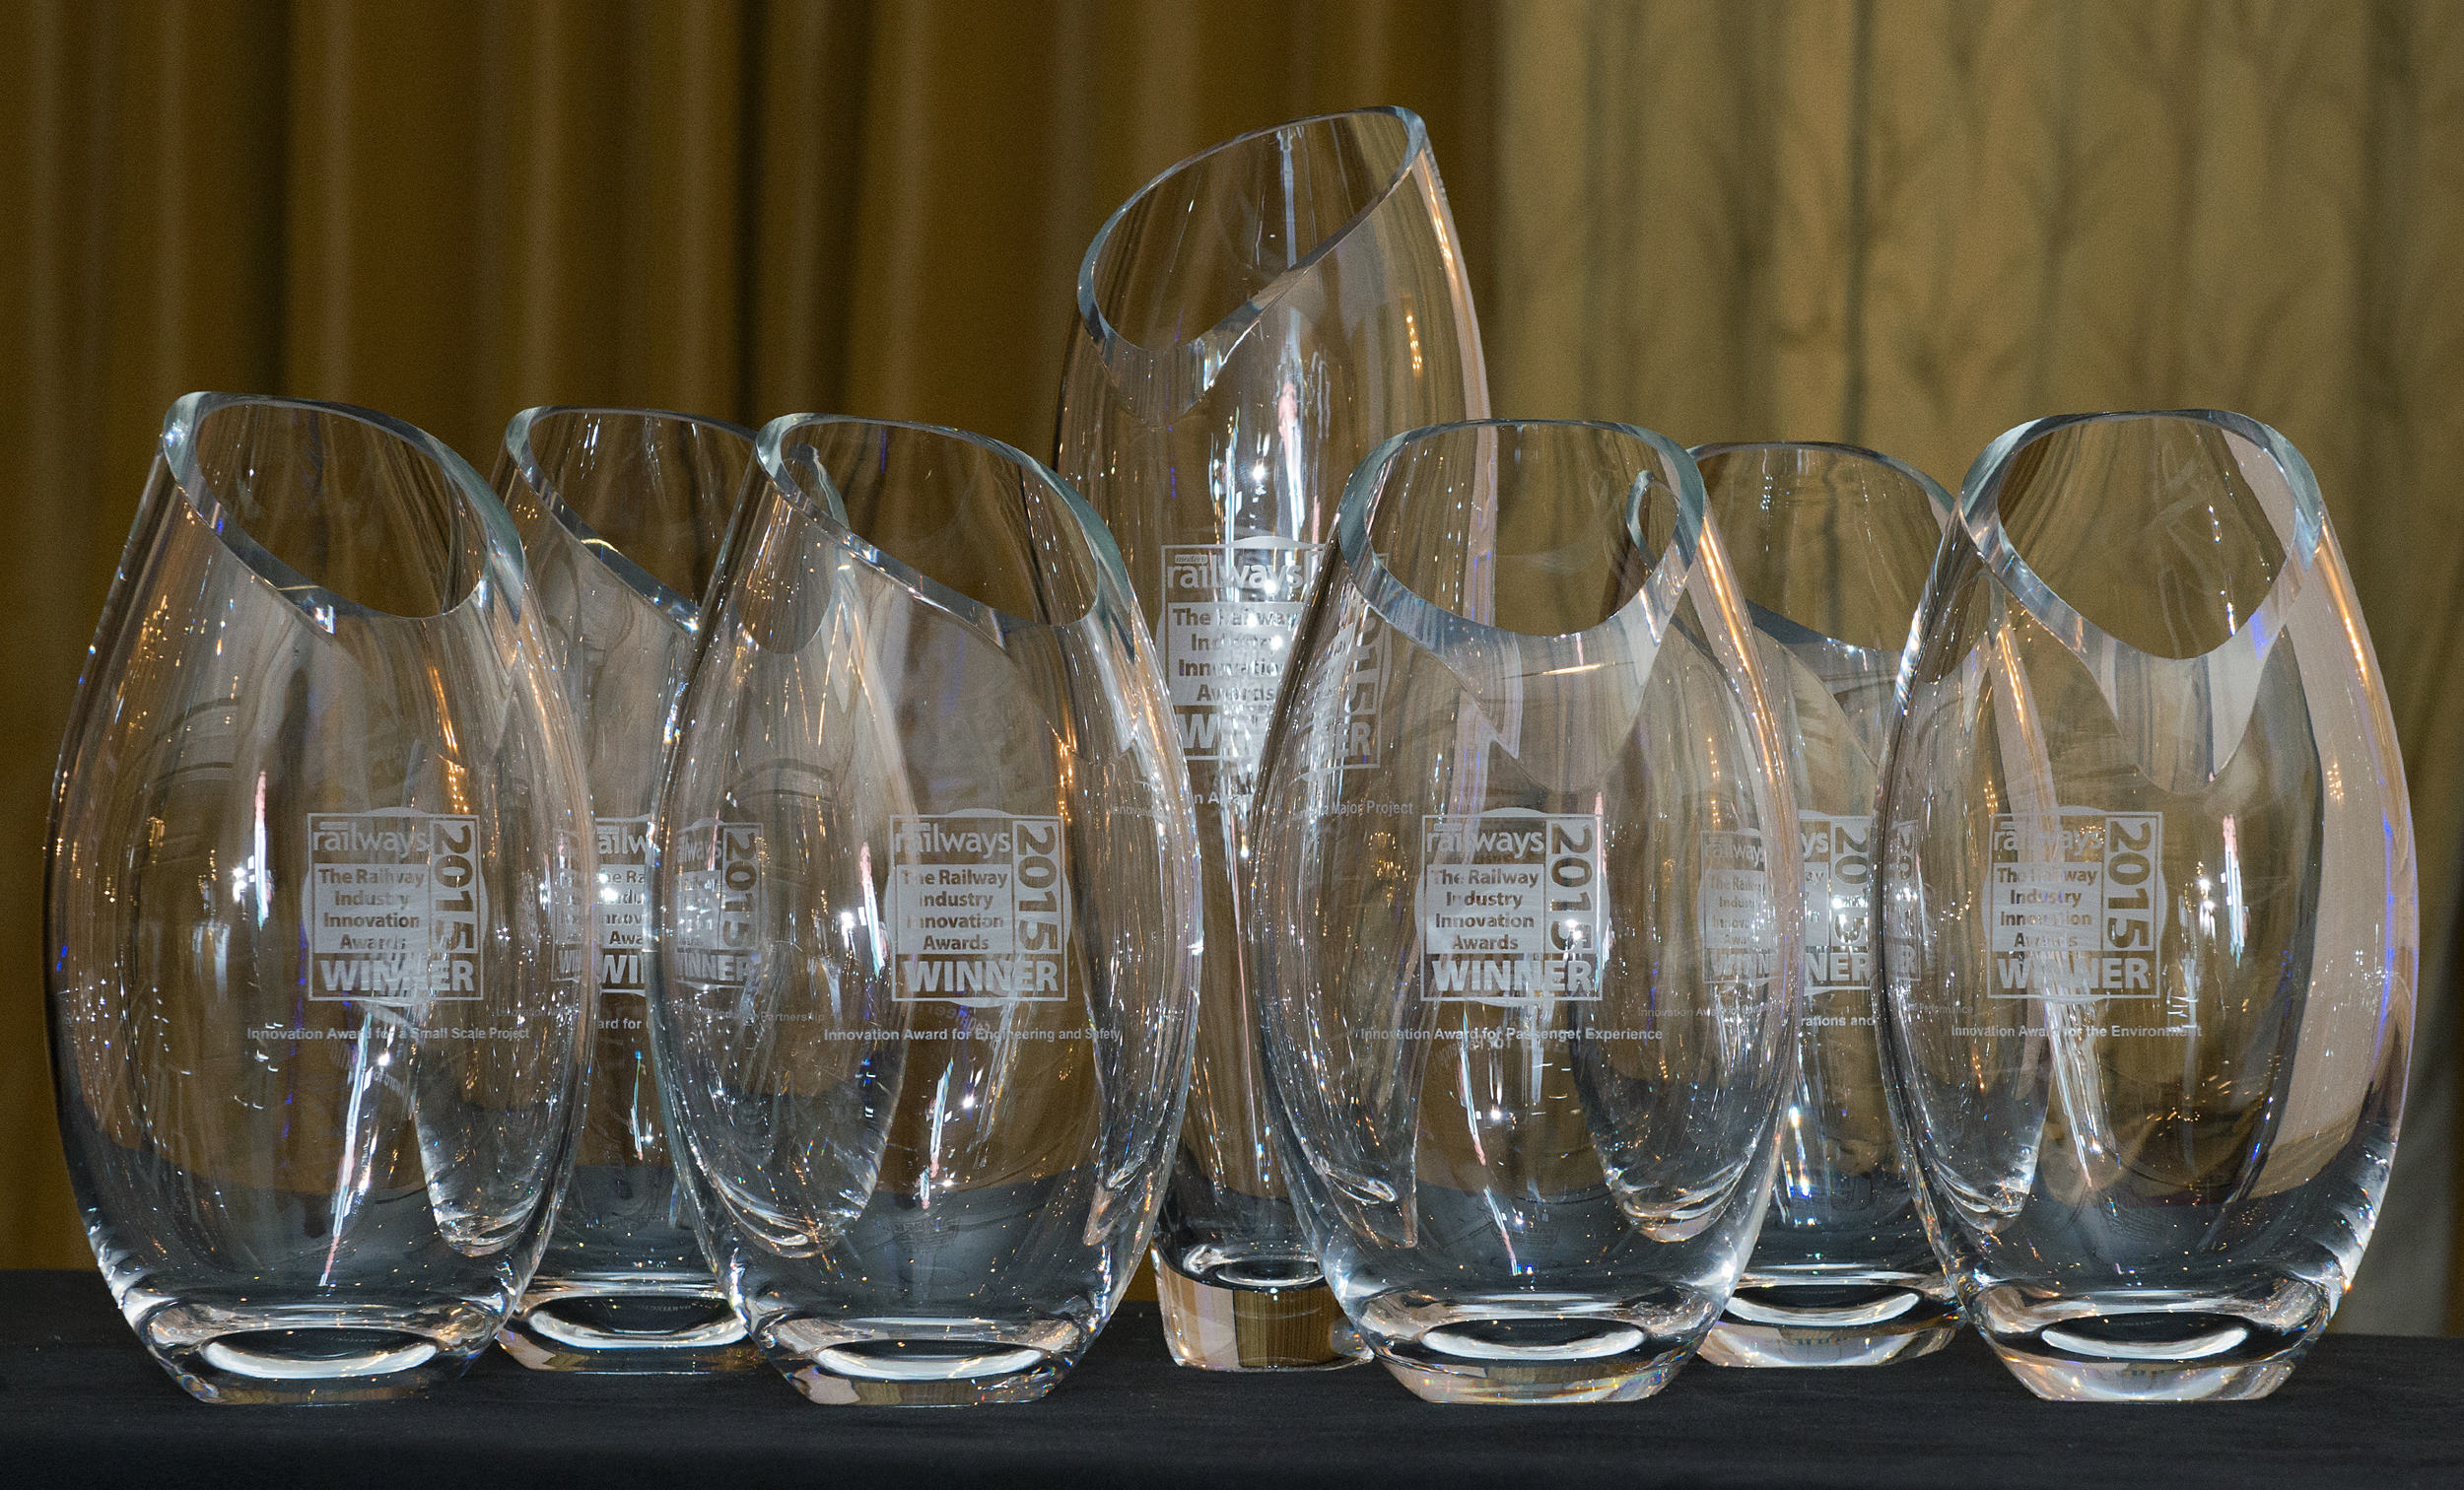 Innovaton Awards 2015 - trophies 1.jpg